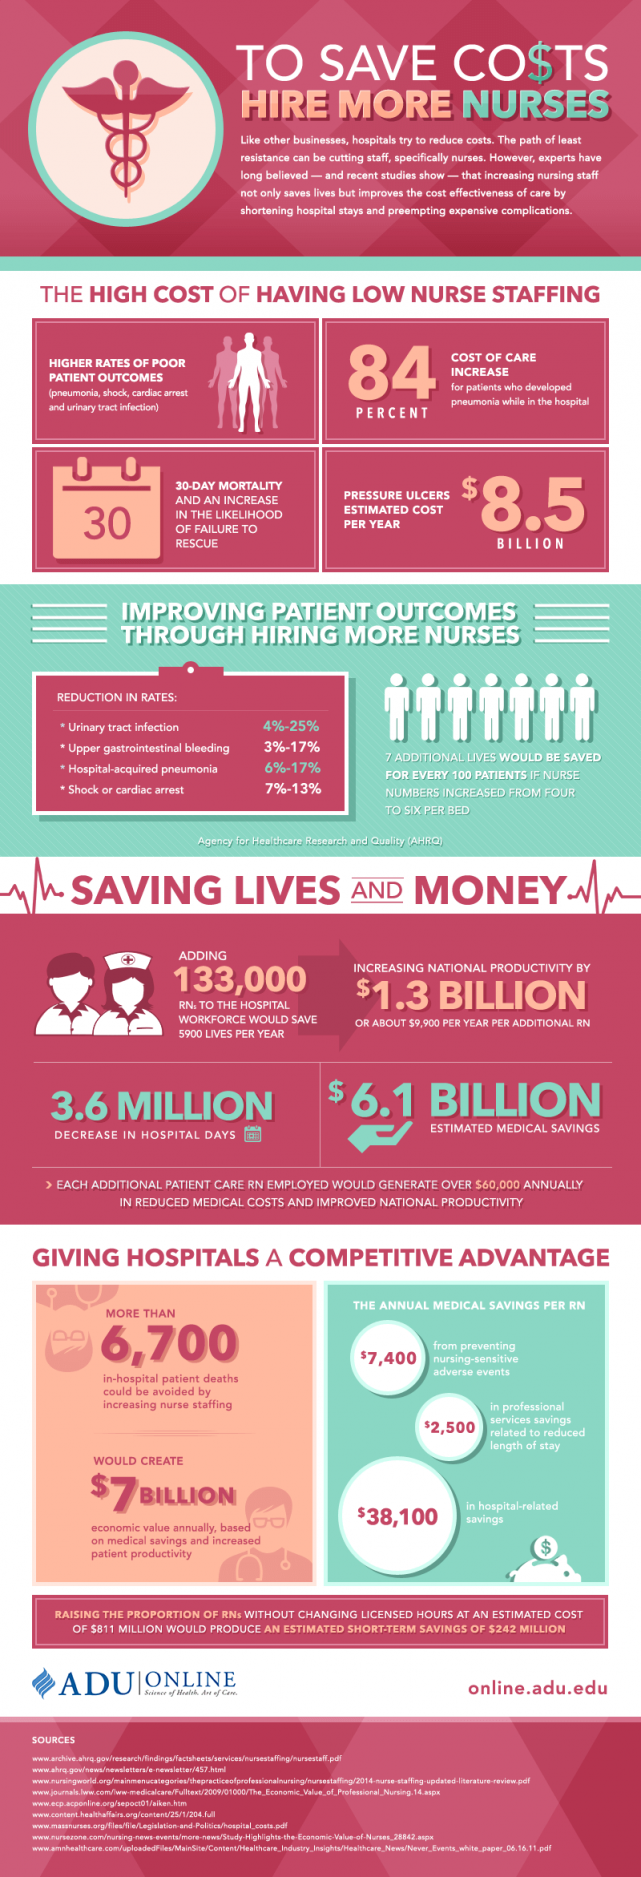 To Save Costs, Hire More Nurses Infographic